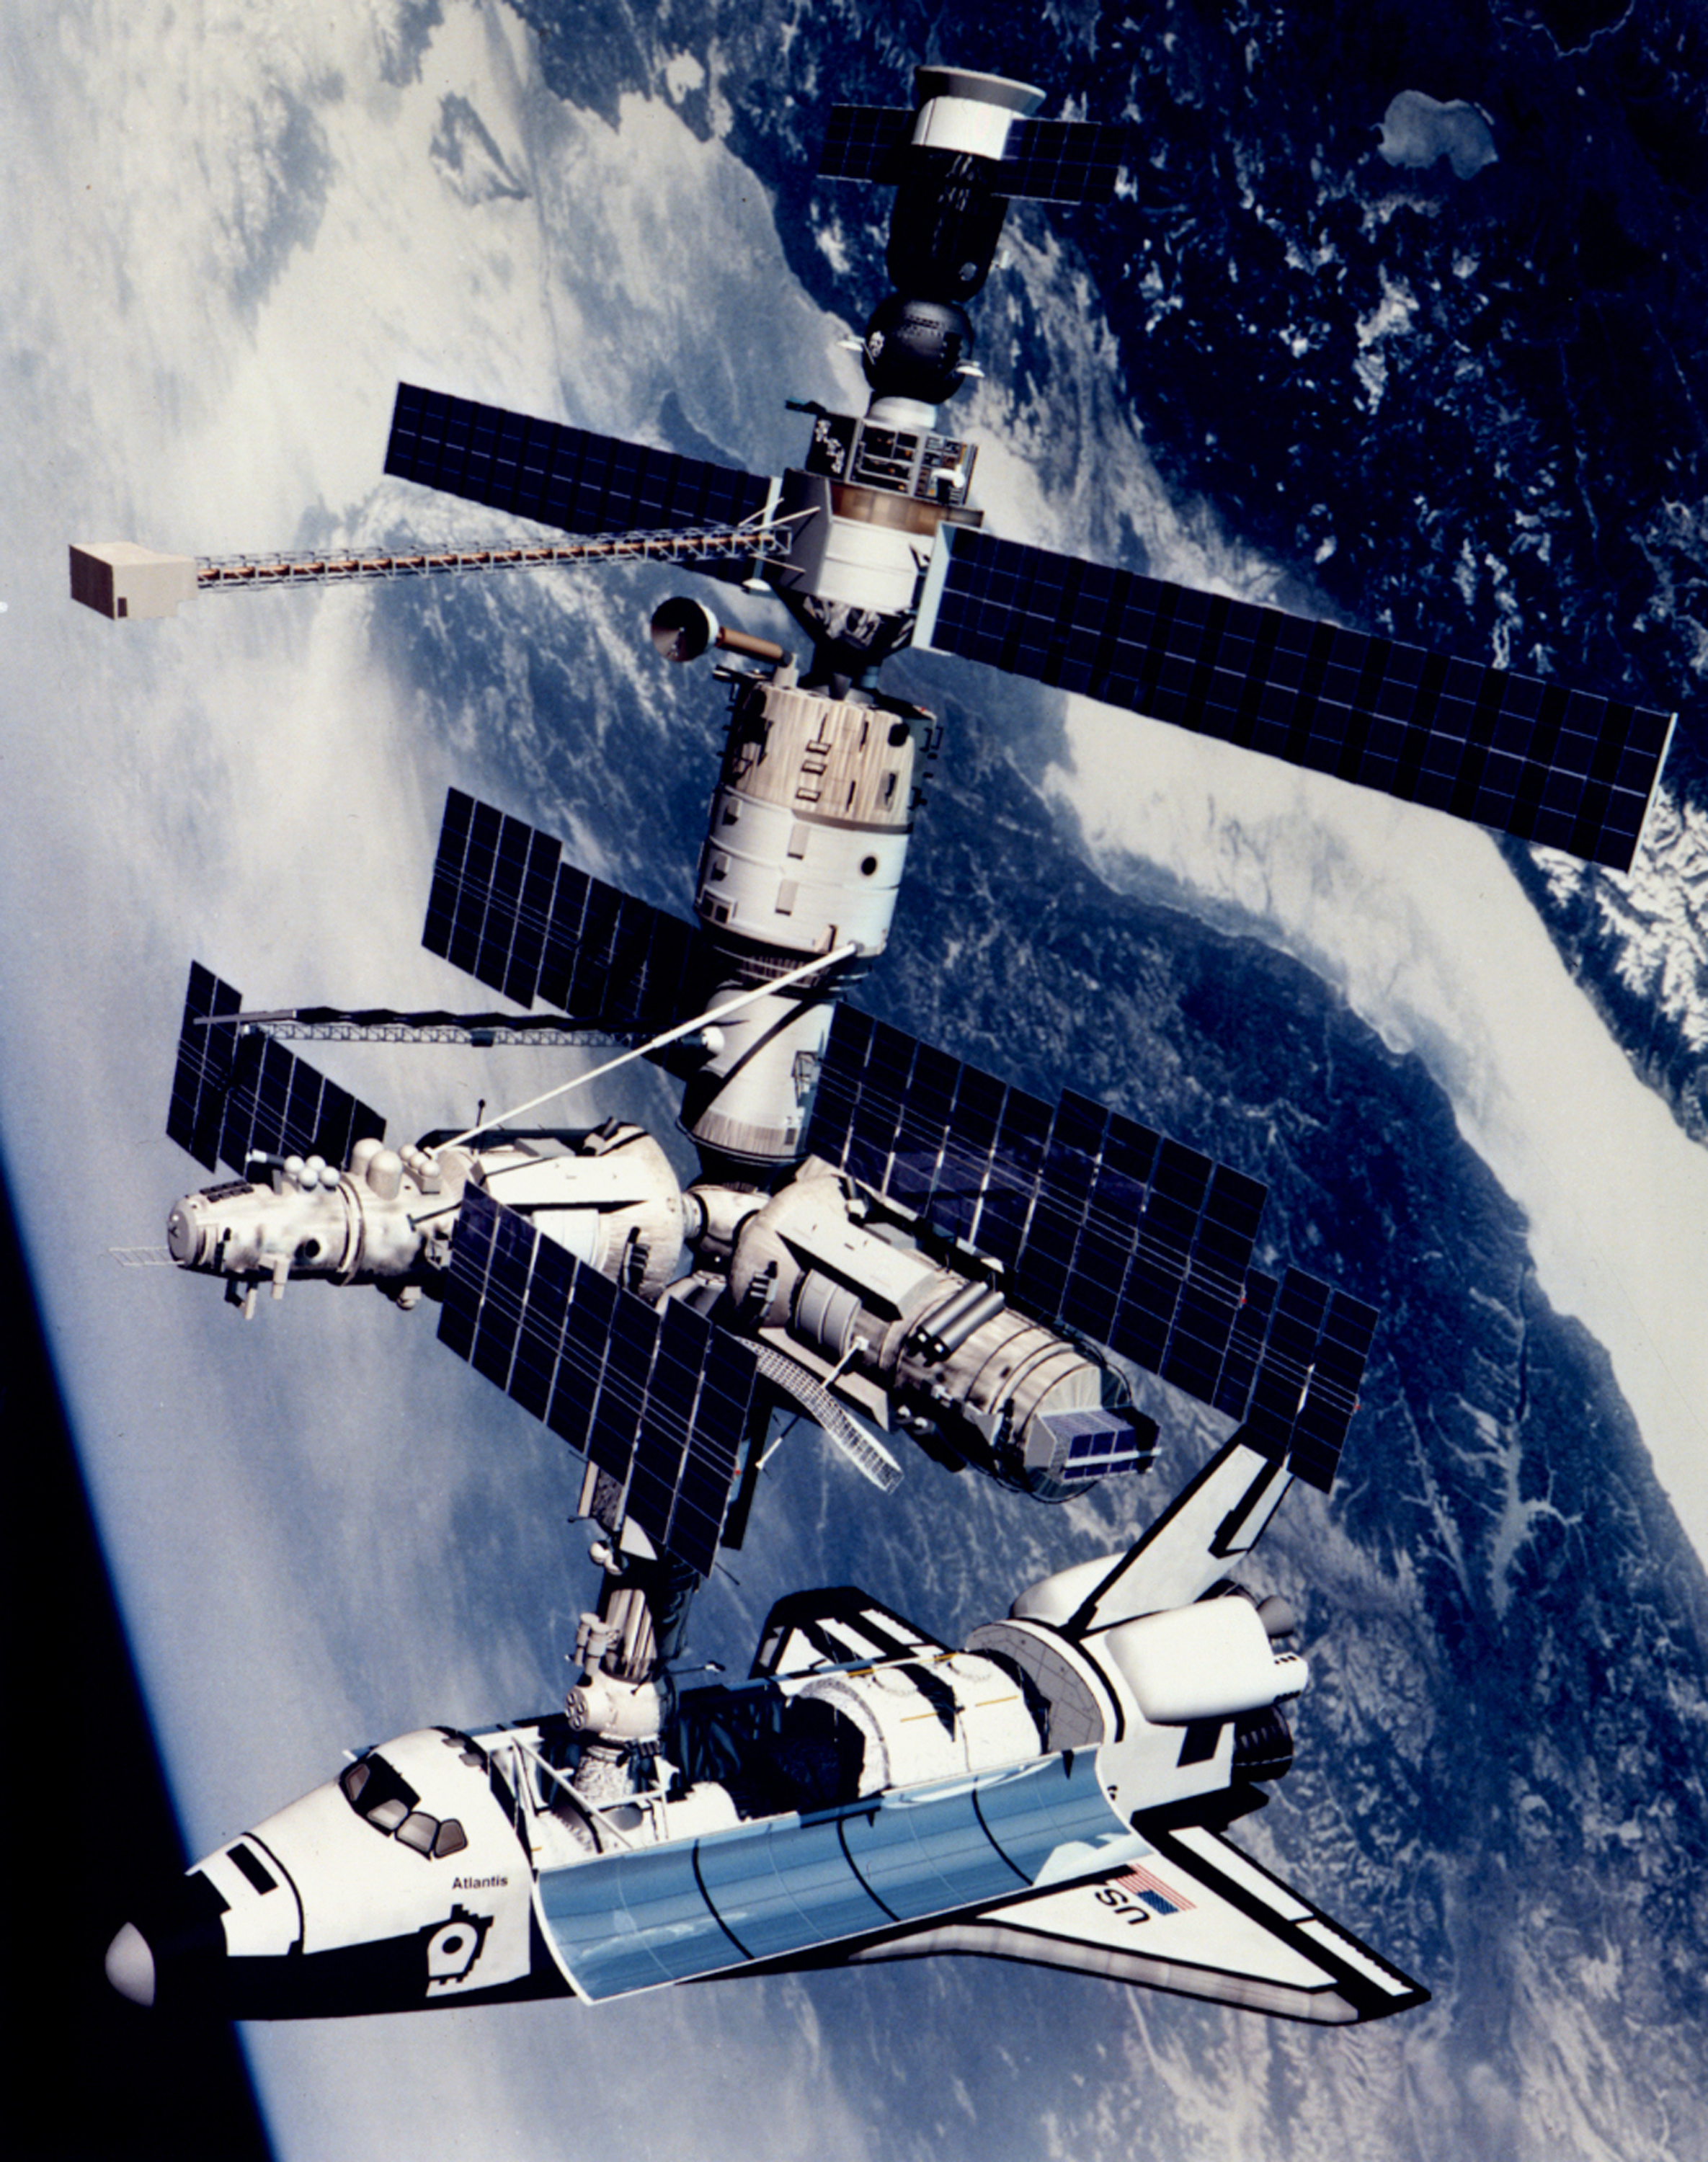 https://i1.wp.com/upload.wikimedia.org/wikipedia/commons/5/58/Technical_rendition_of_STS-71_docked_to_Mir.jpg